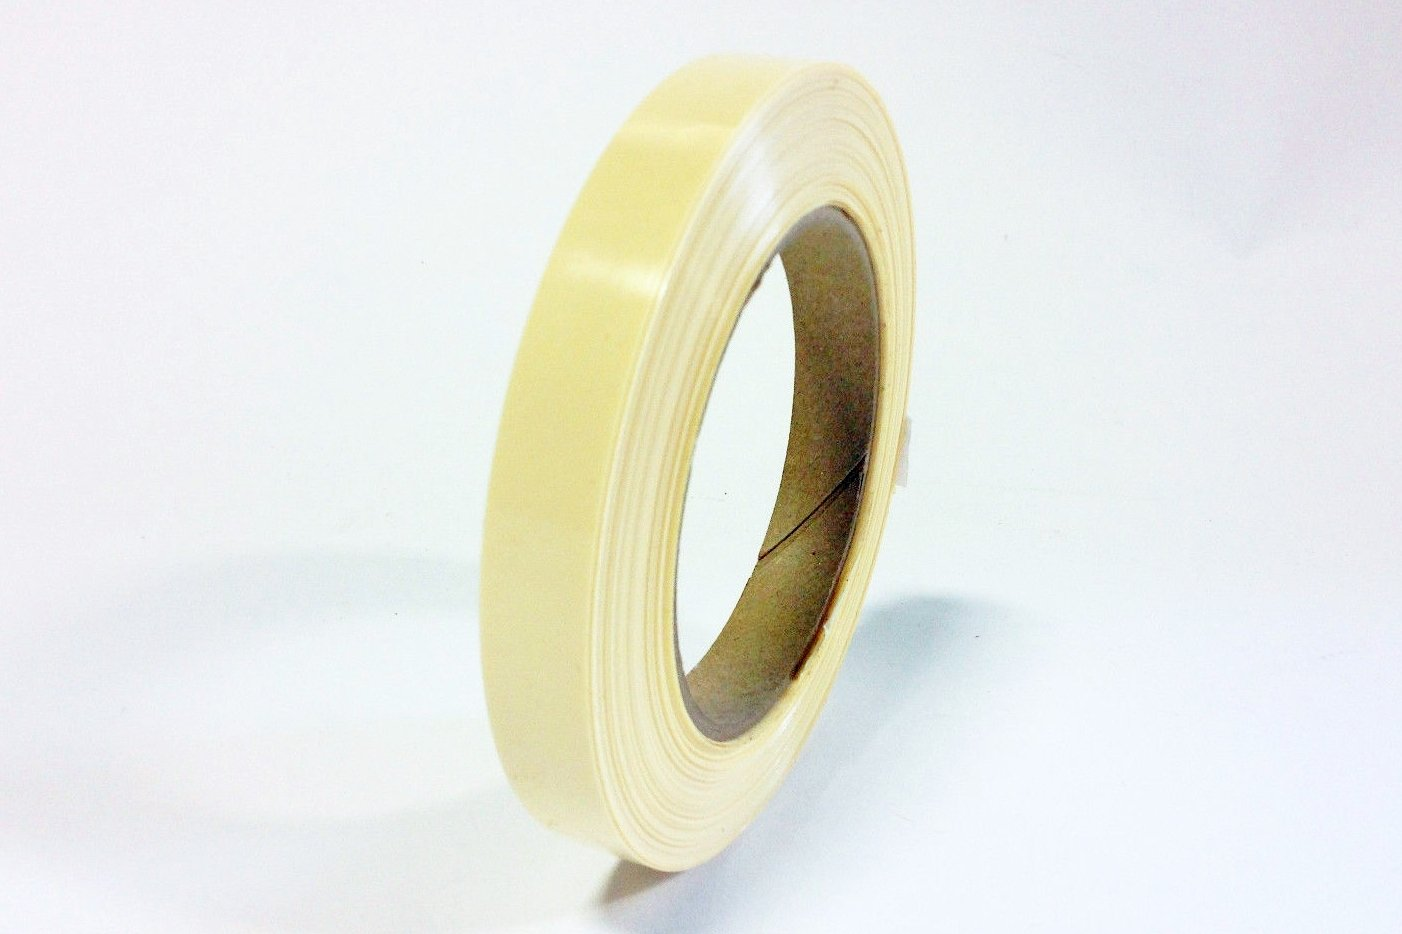 5 Rolls of Tesa 4298 Medium Duty Tensilized Non-Staining Strapping Tape - 1/2 Inch X 60 Yards - Ivory Color